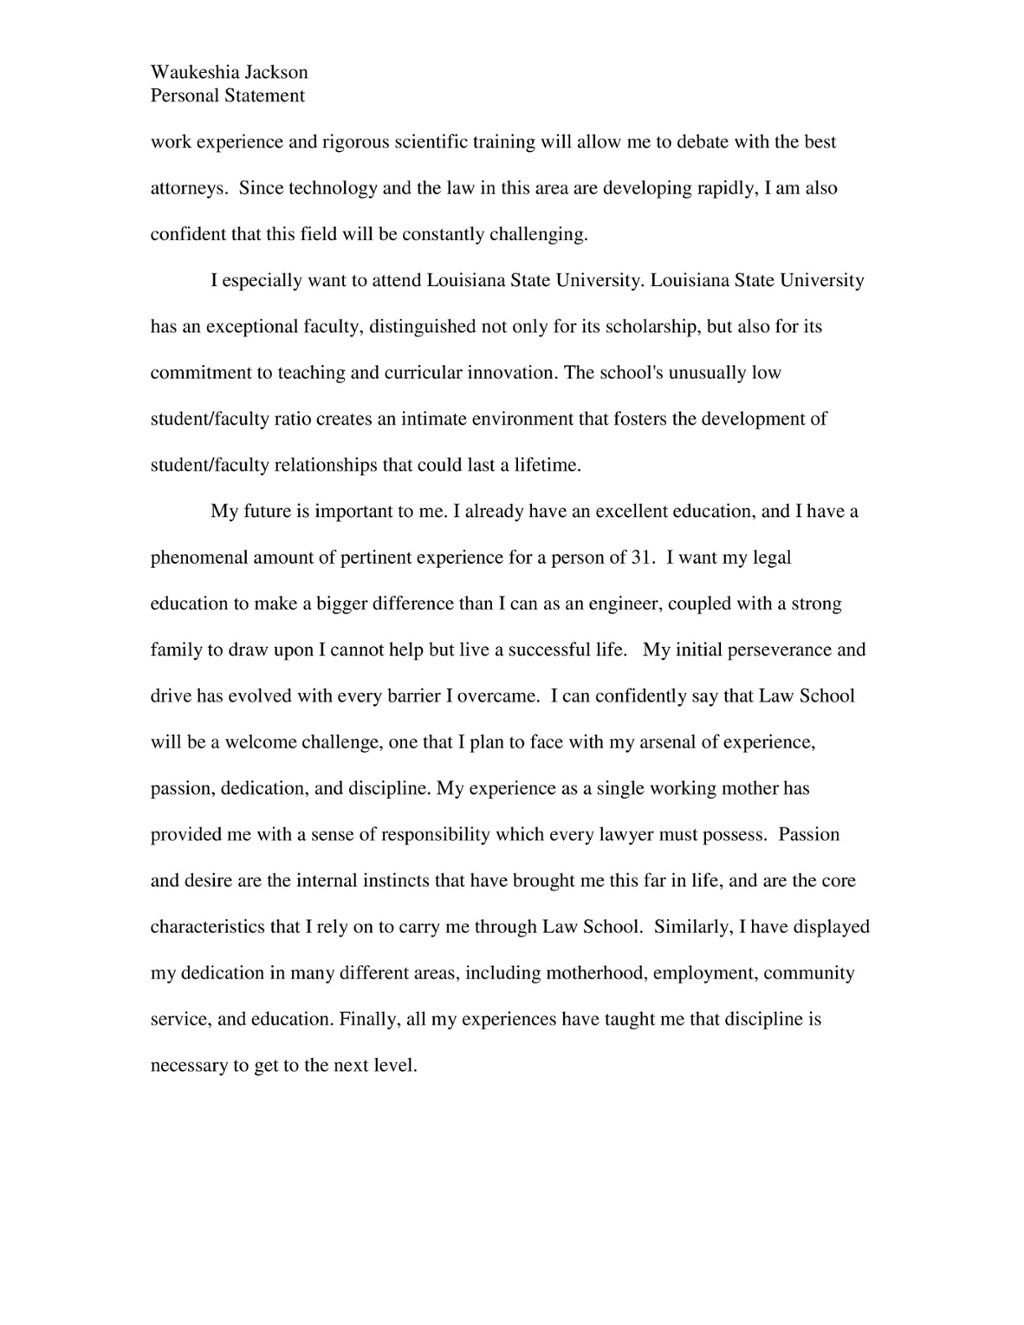 law school essay examples co law school essay examples